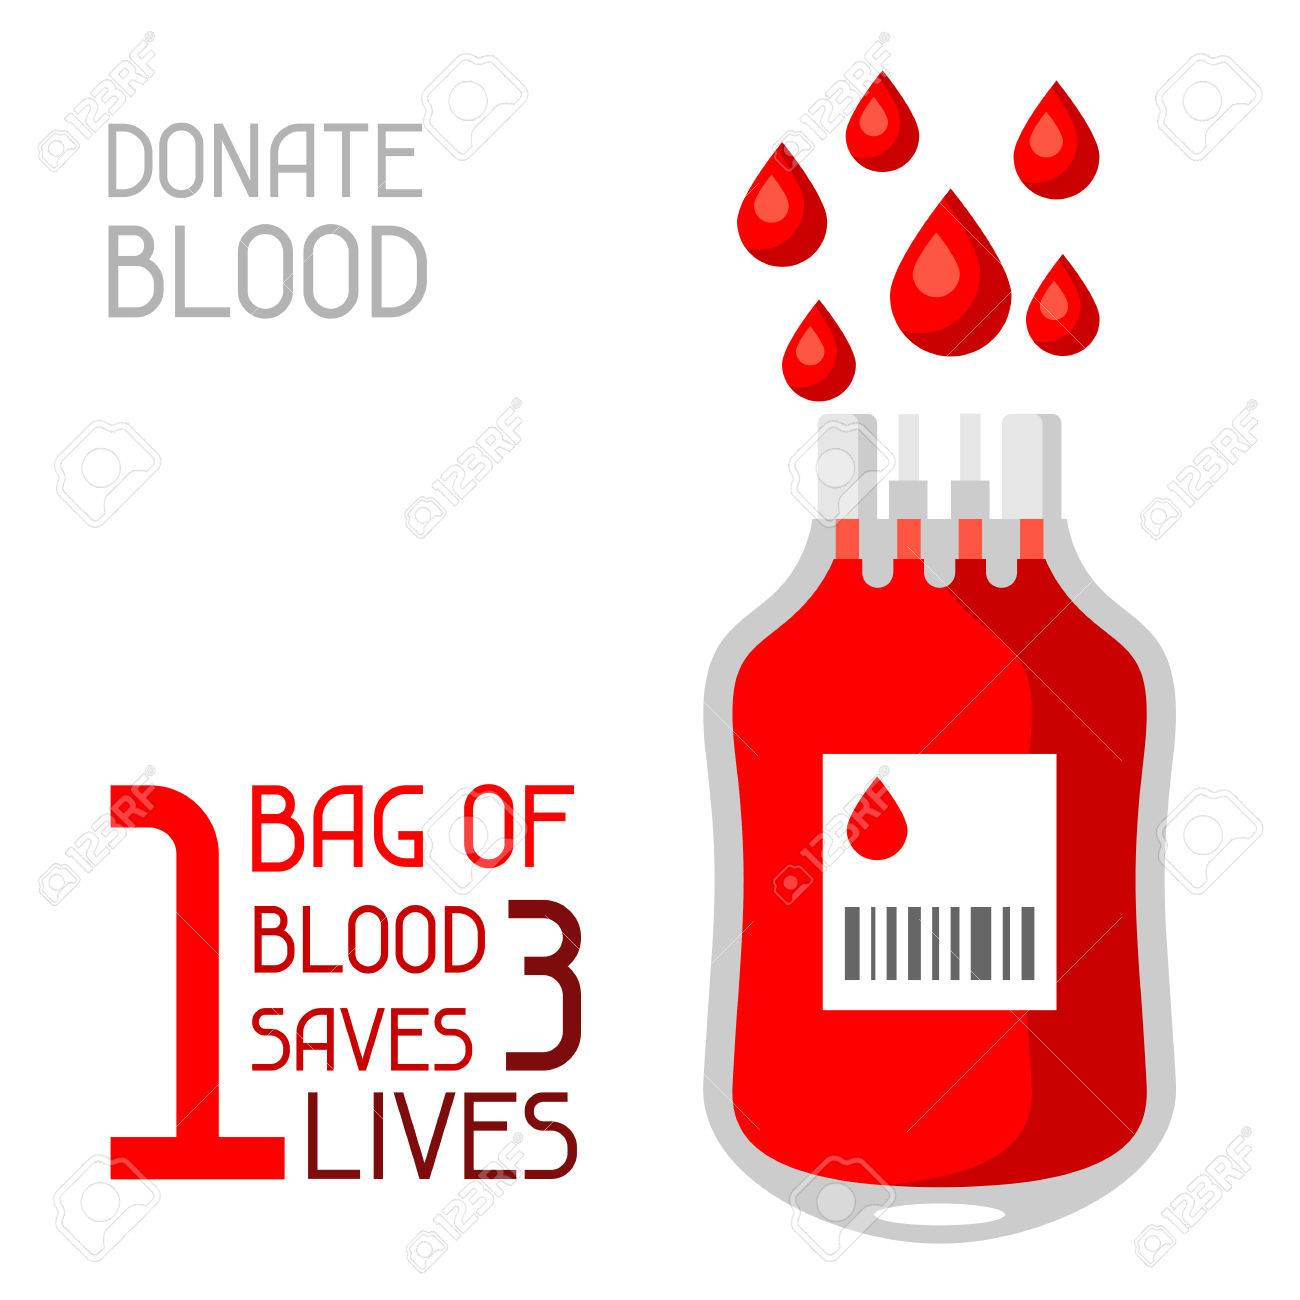 1 bag of blood saves 3 lives. Medical and healthcare concept - 76343611